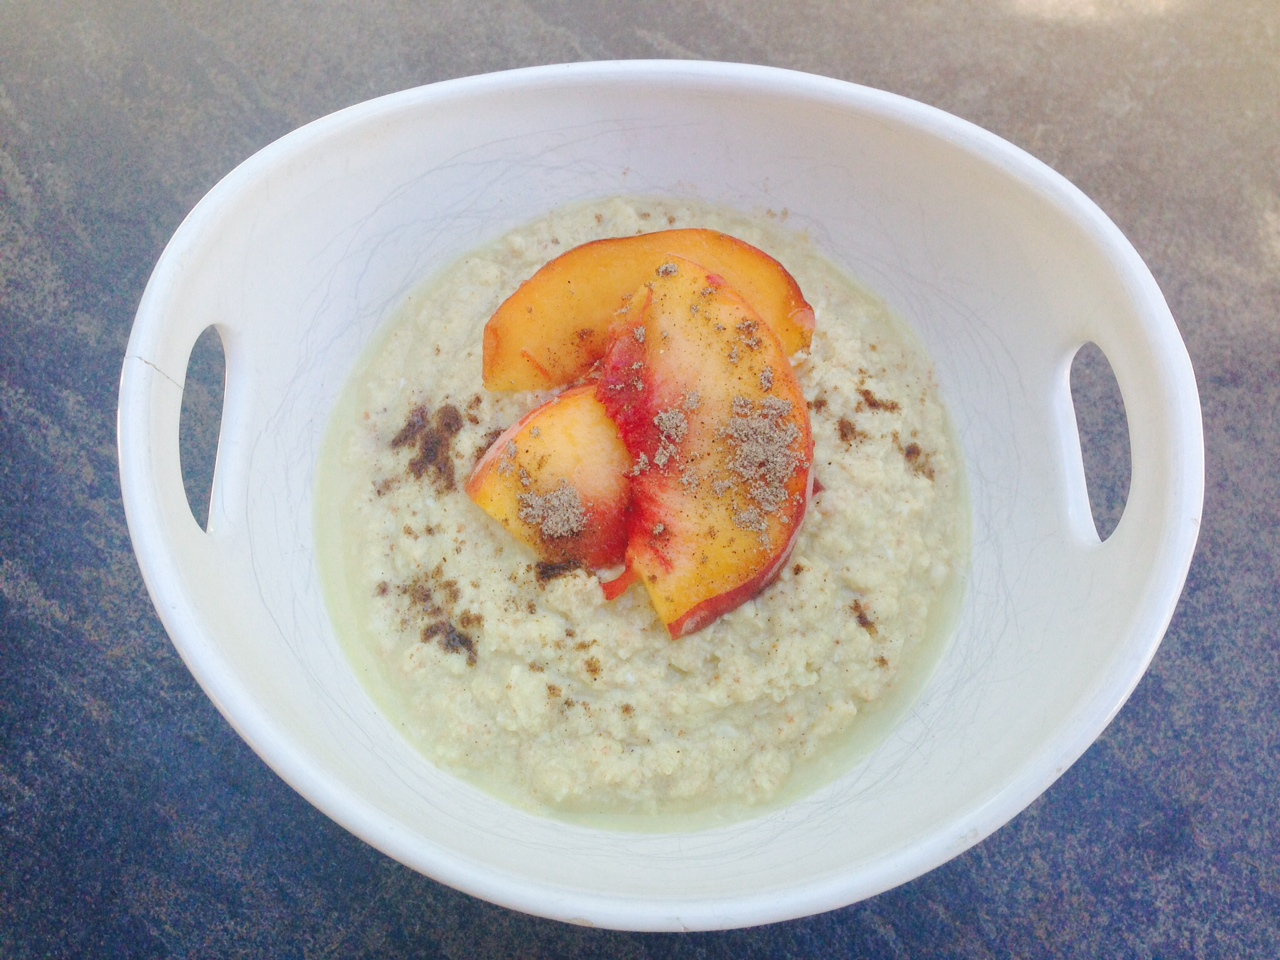 Start your day with a protein packed and nourishing bowl of goodness!